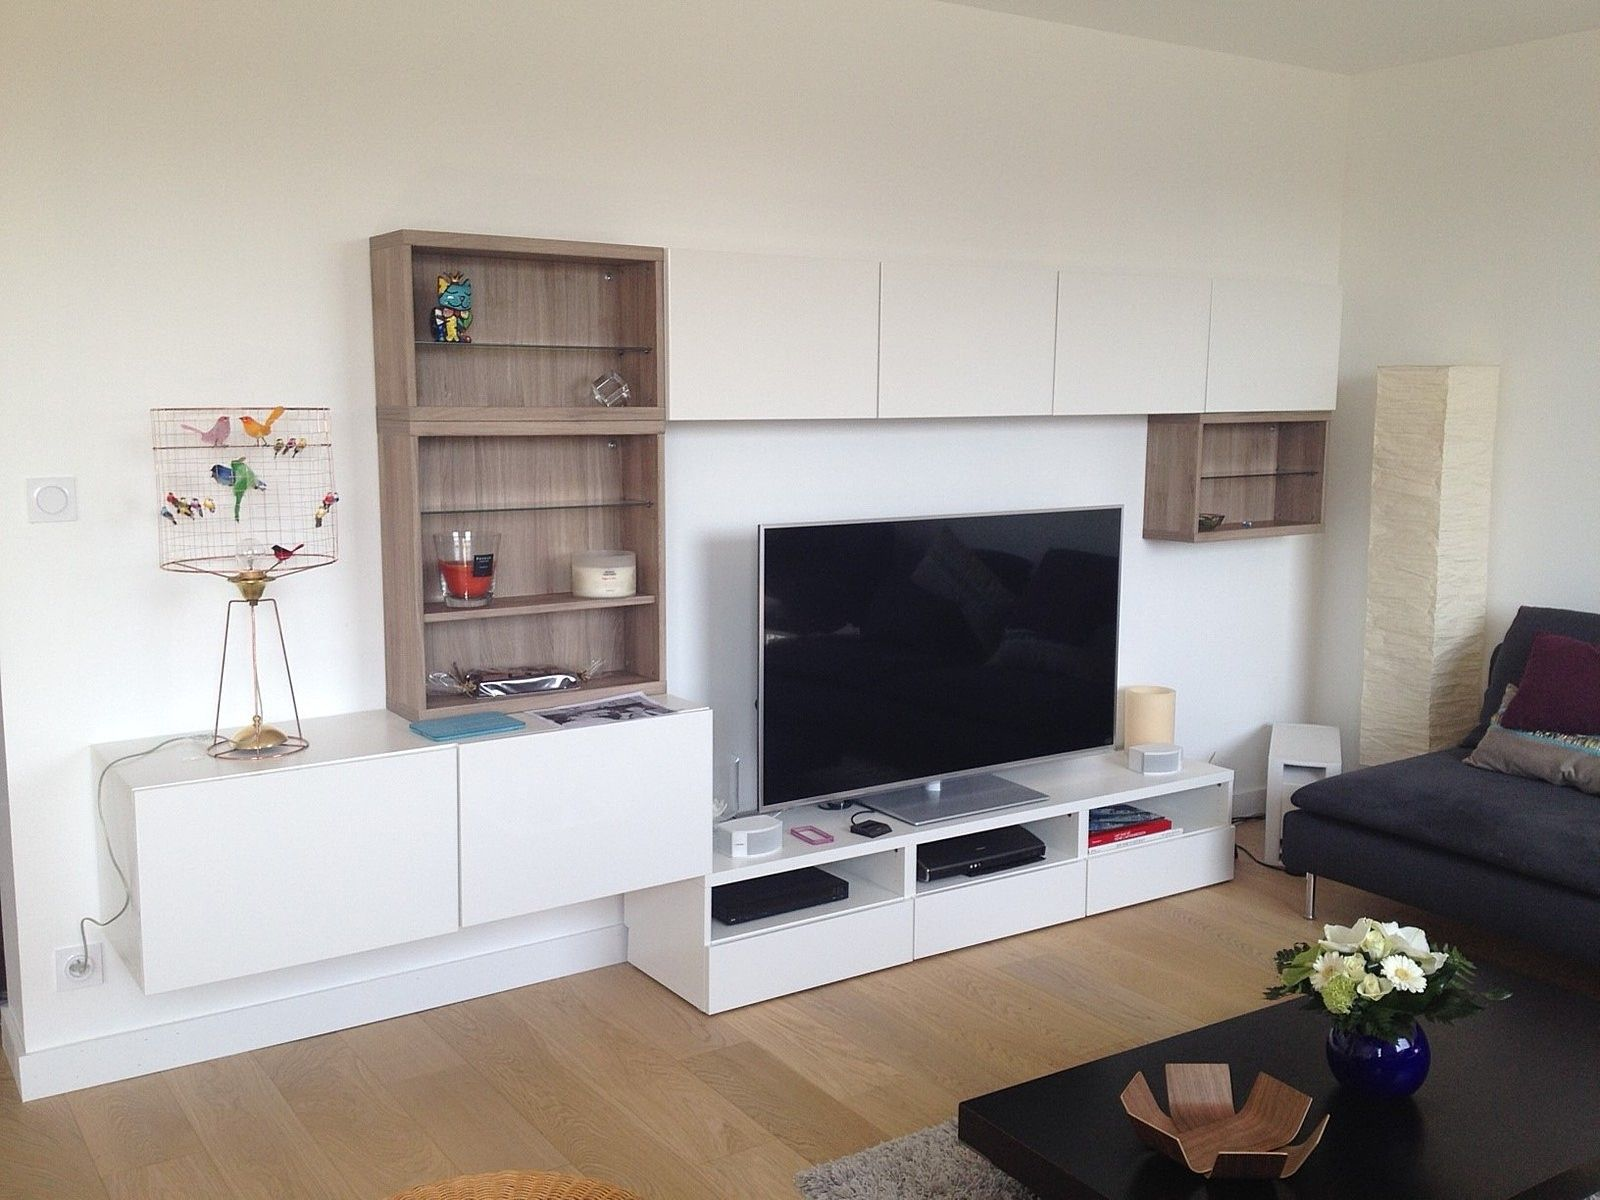 Ordinary Modern Style Living Room Part 5 Ikea Besta